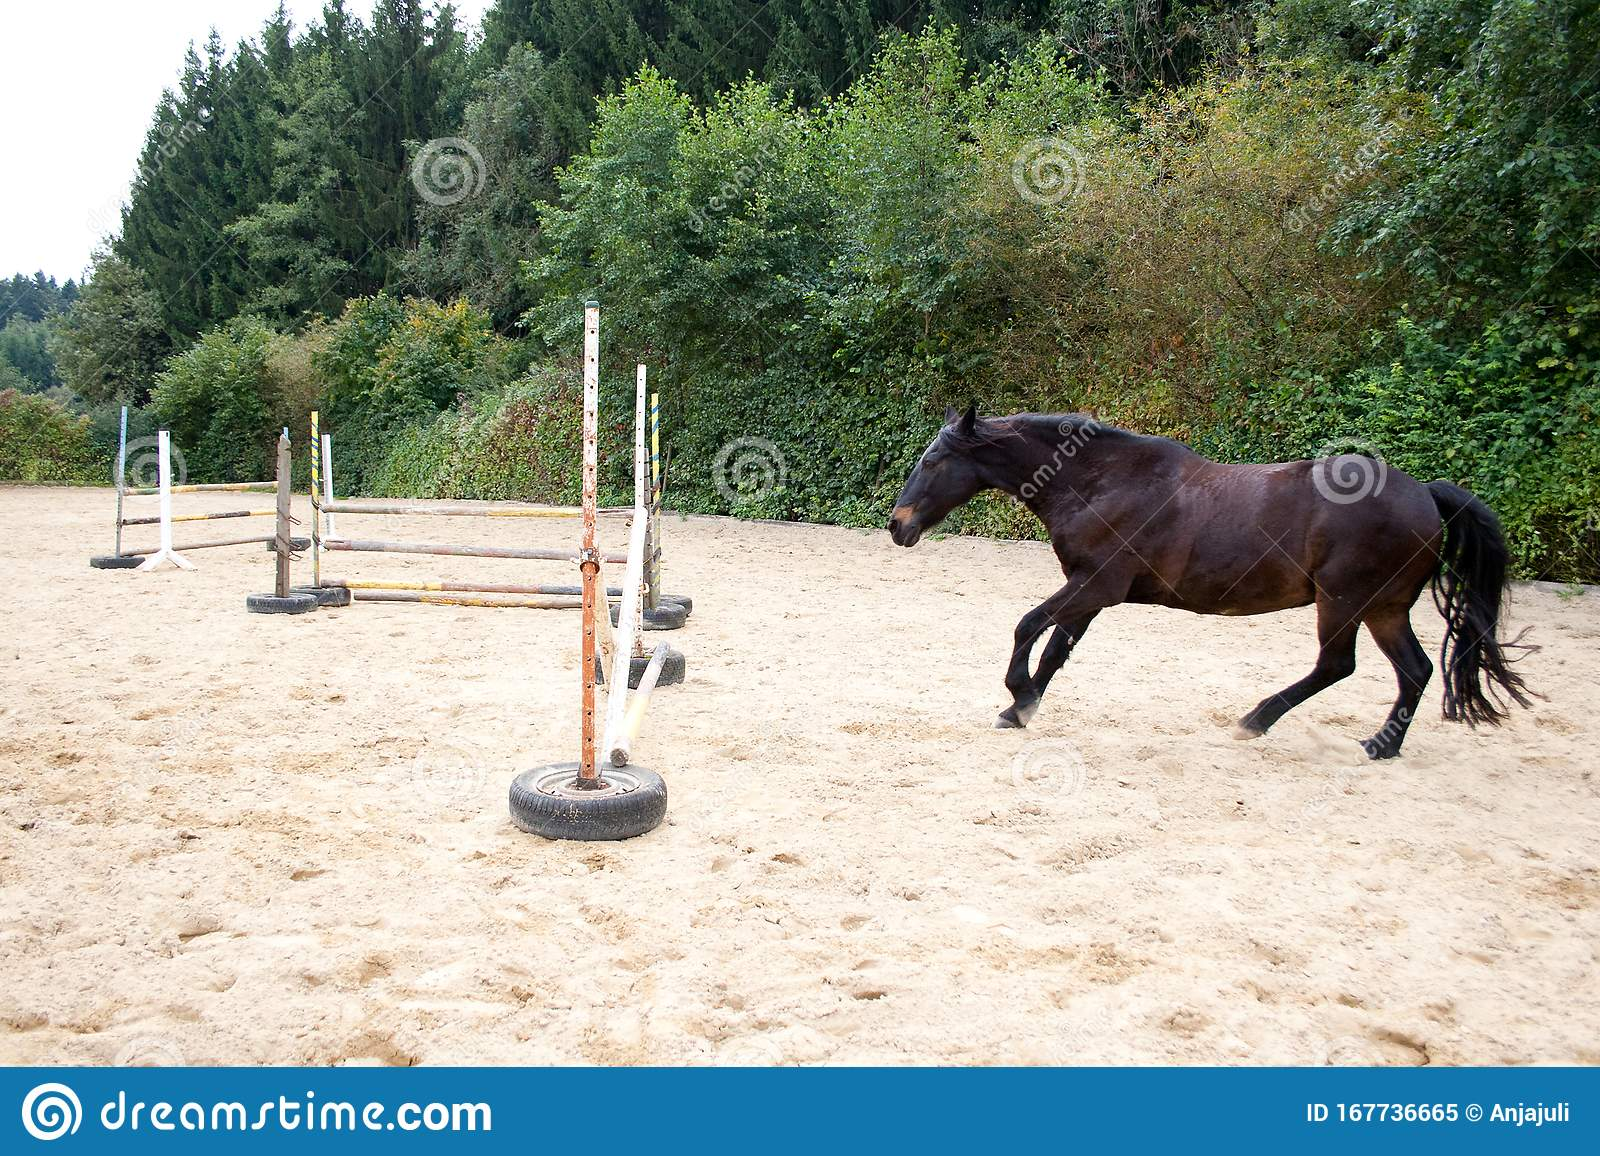 Horse Jumping Free Without Rider Horse Training With Fun Stock Image Image Of Summer Farm 167736665